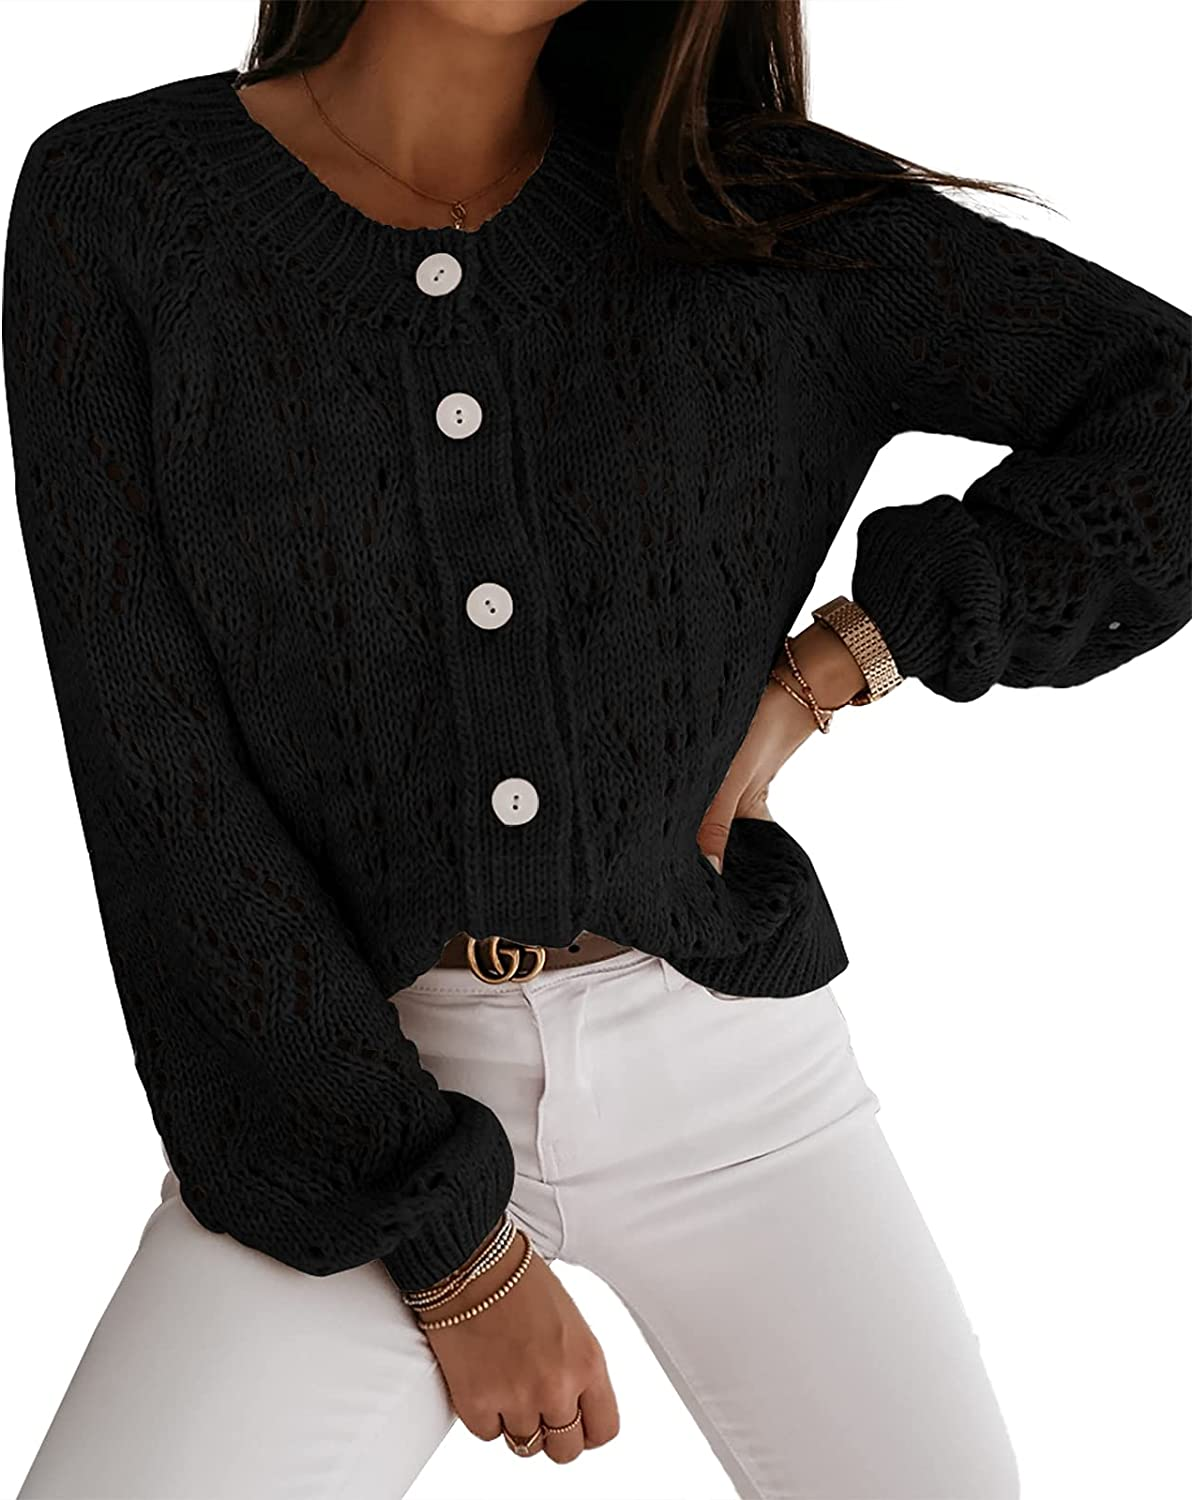 Women's Knit Cardigan Light Hollow Open Front Sweater Cute Outerwear with Button